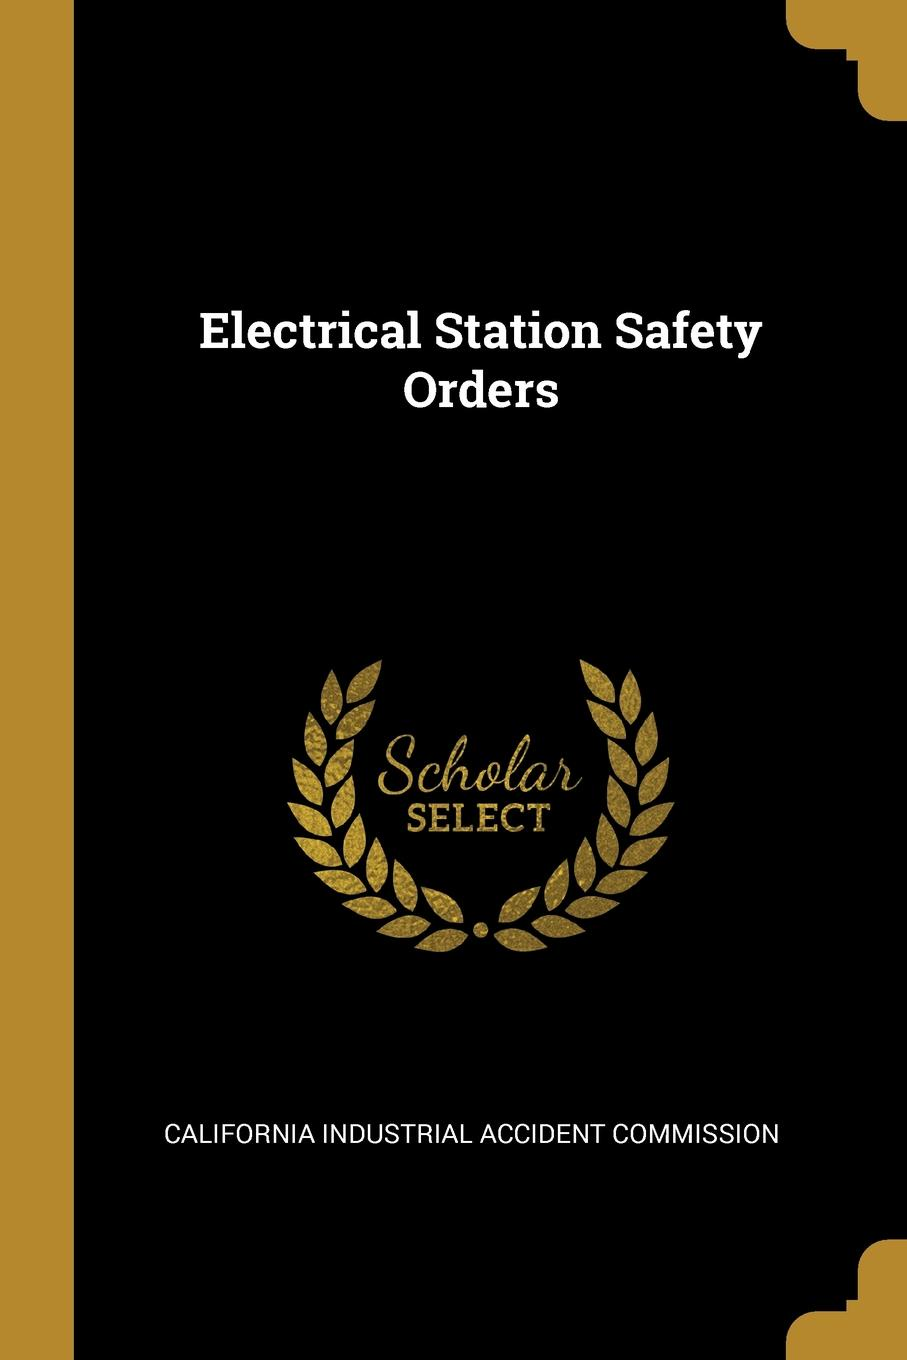 Californ Industrial Accident Commission. Electrical Station Safety Orders